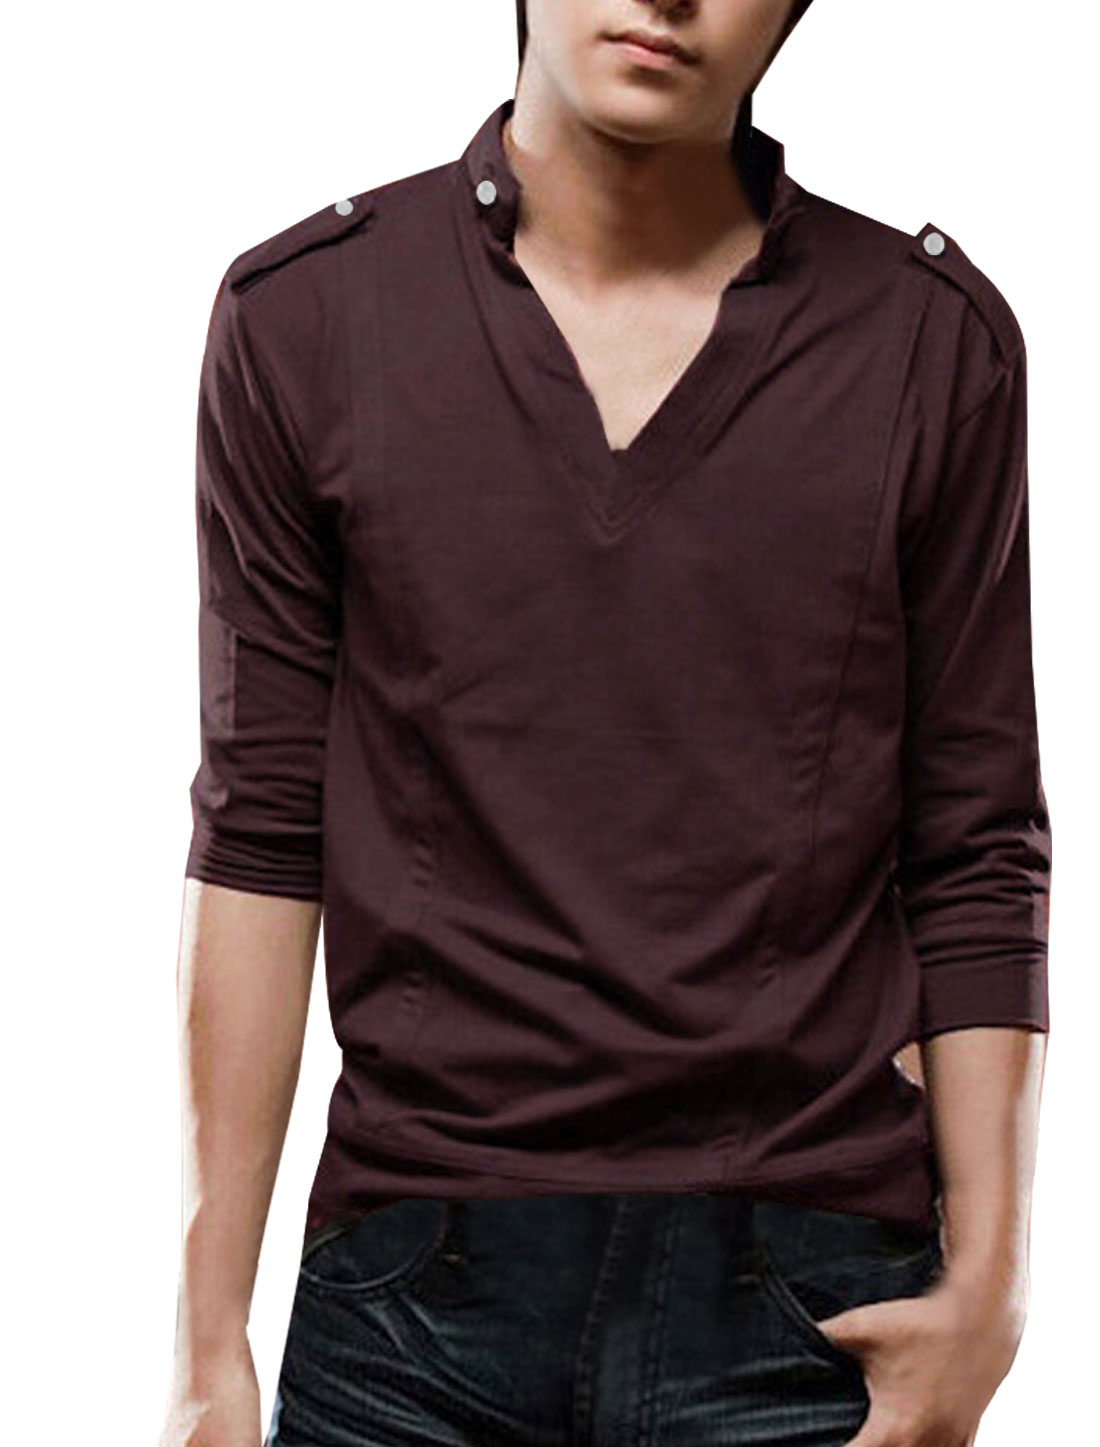 Men Burgundy Simple Design V-neck Button-tab Solid Color Autumn Slim Shirt S